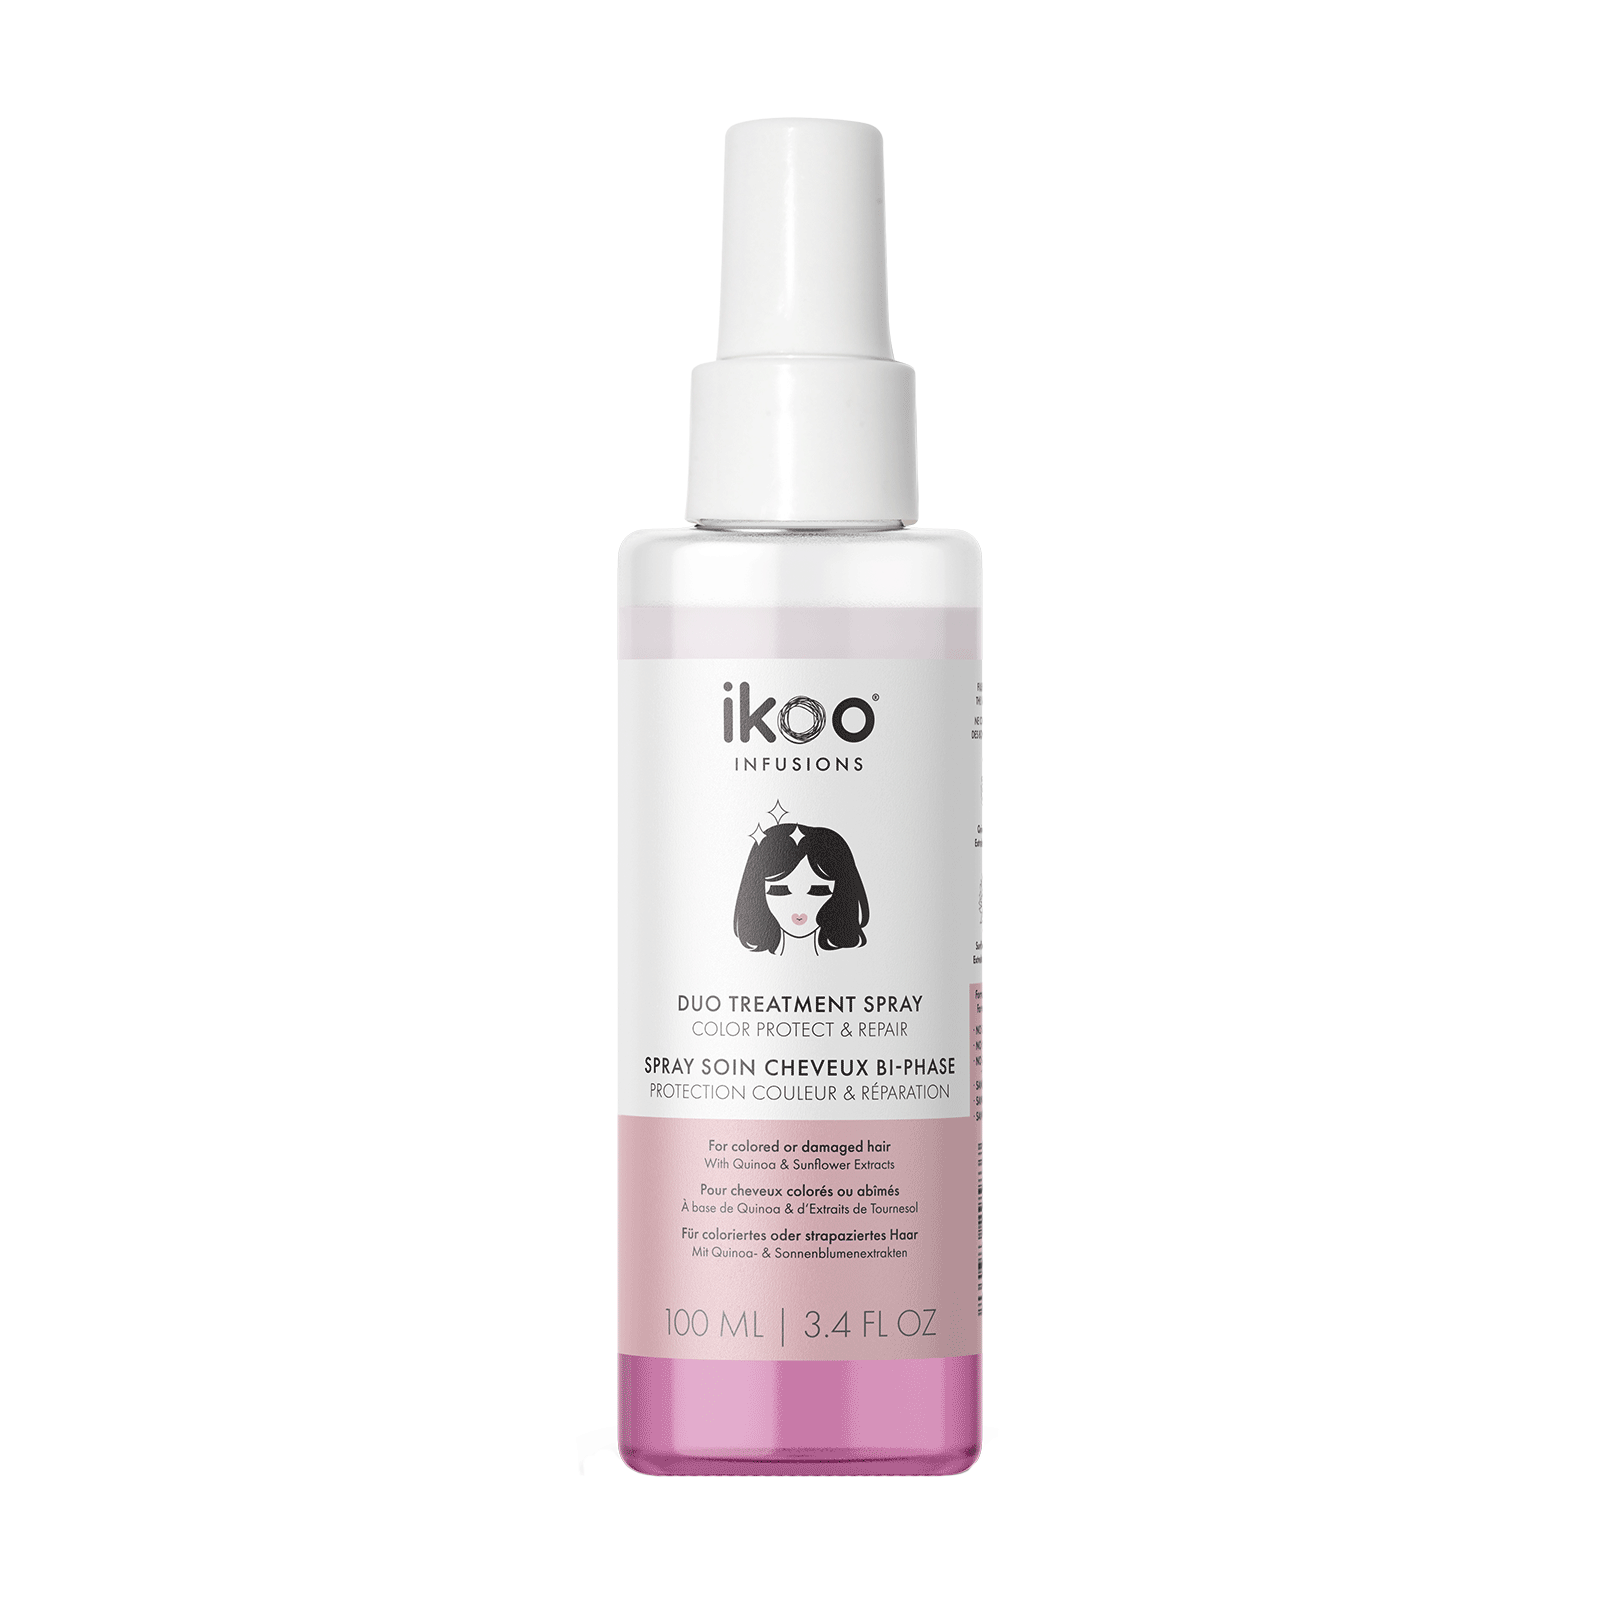 Duo Treatment Spray Color Protect & Repair